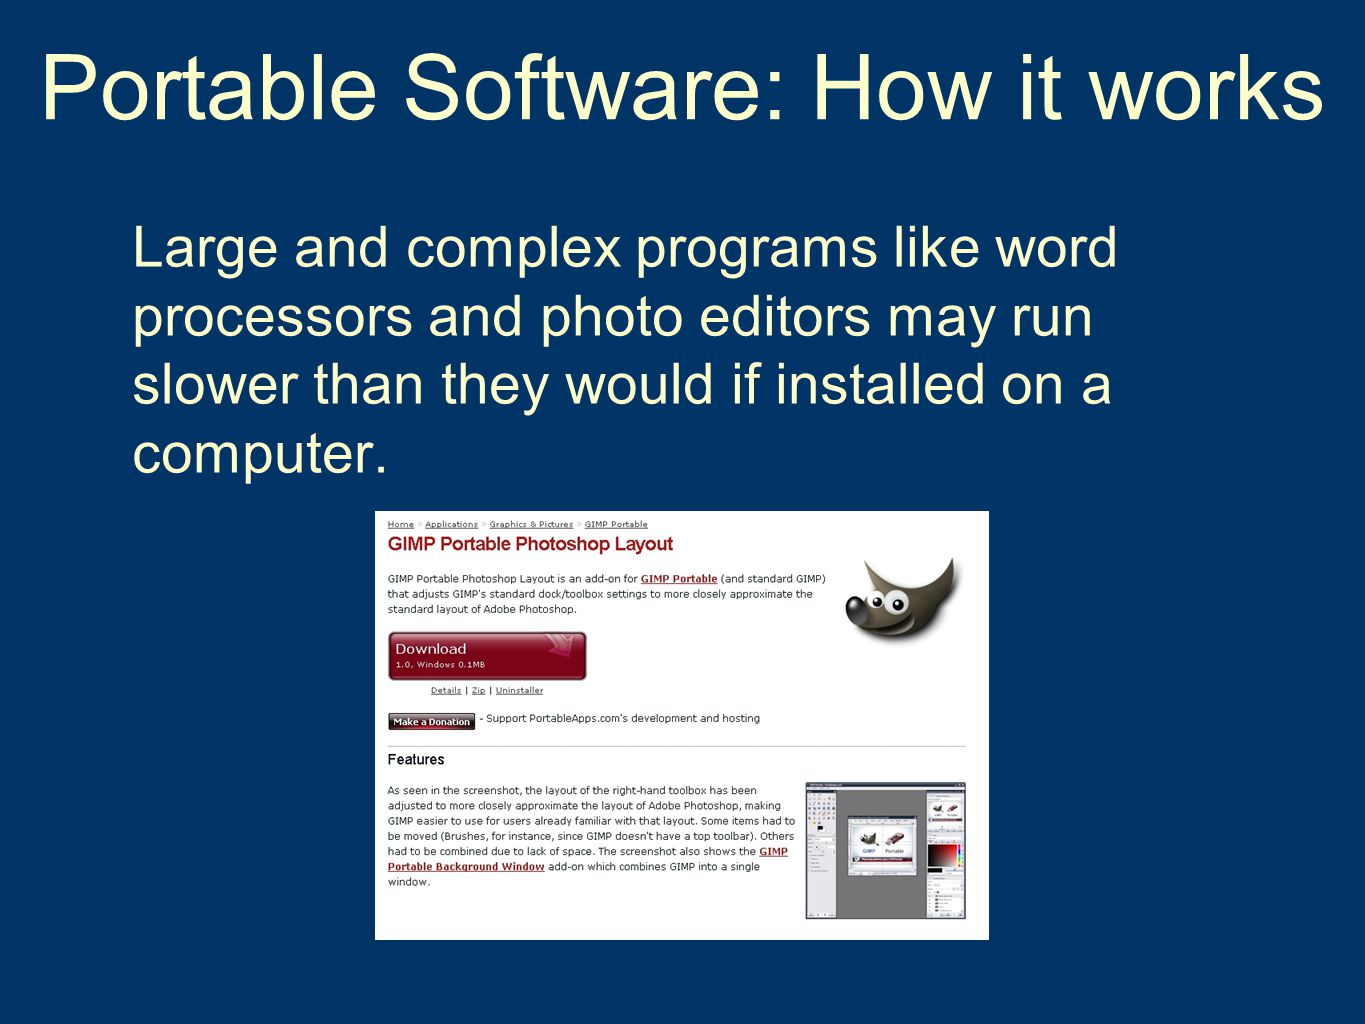 Portable Software  This program will explain what portable software